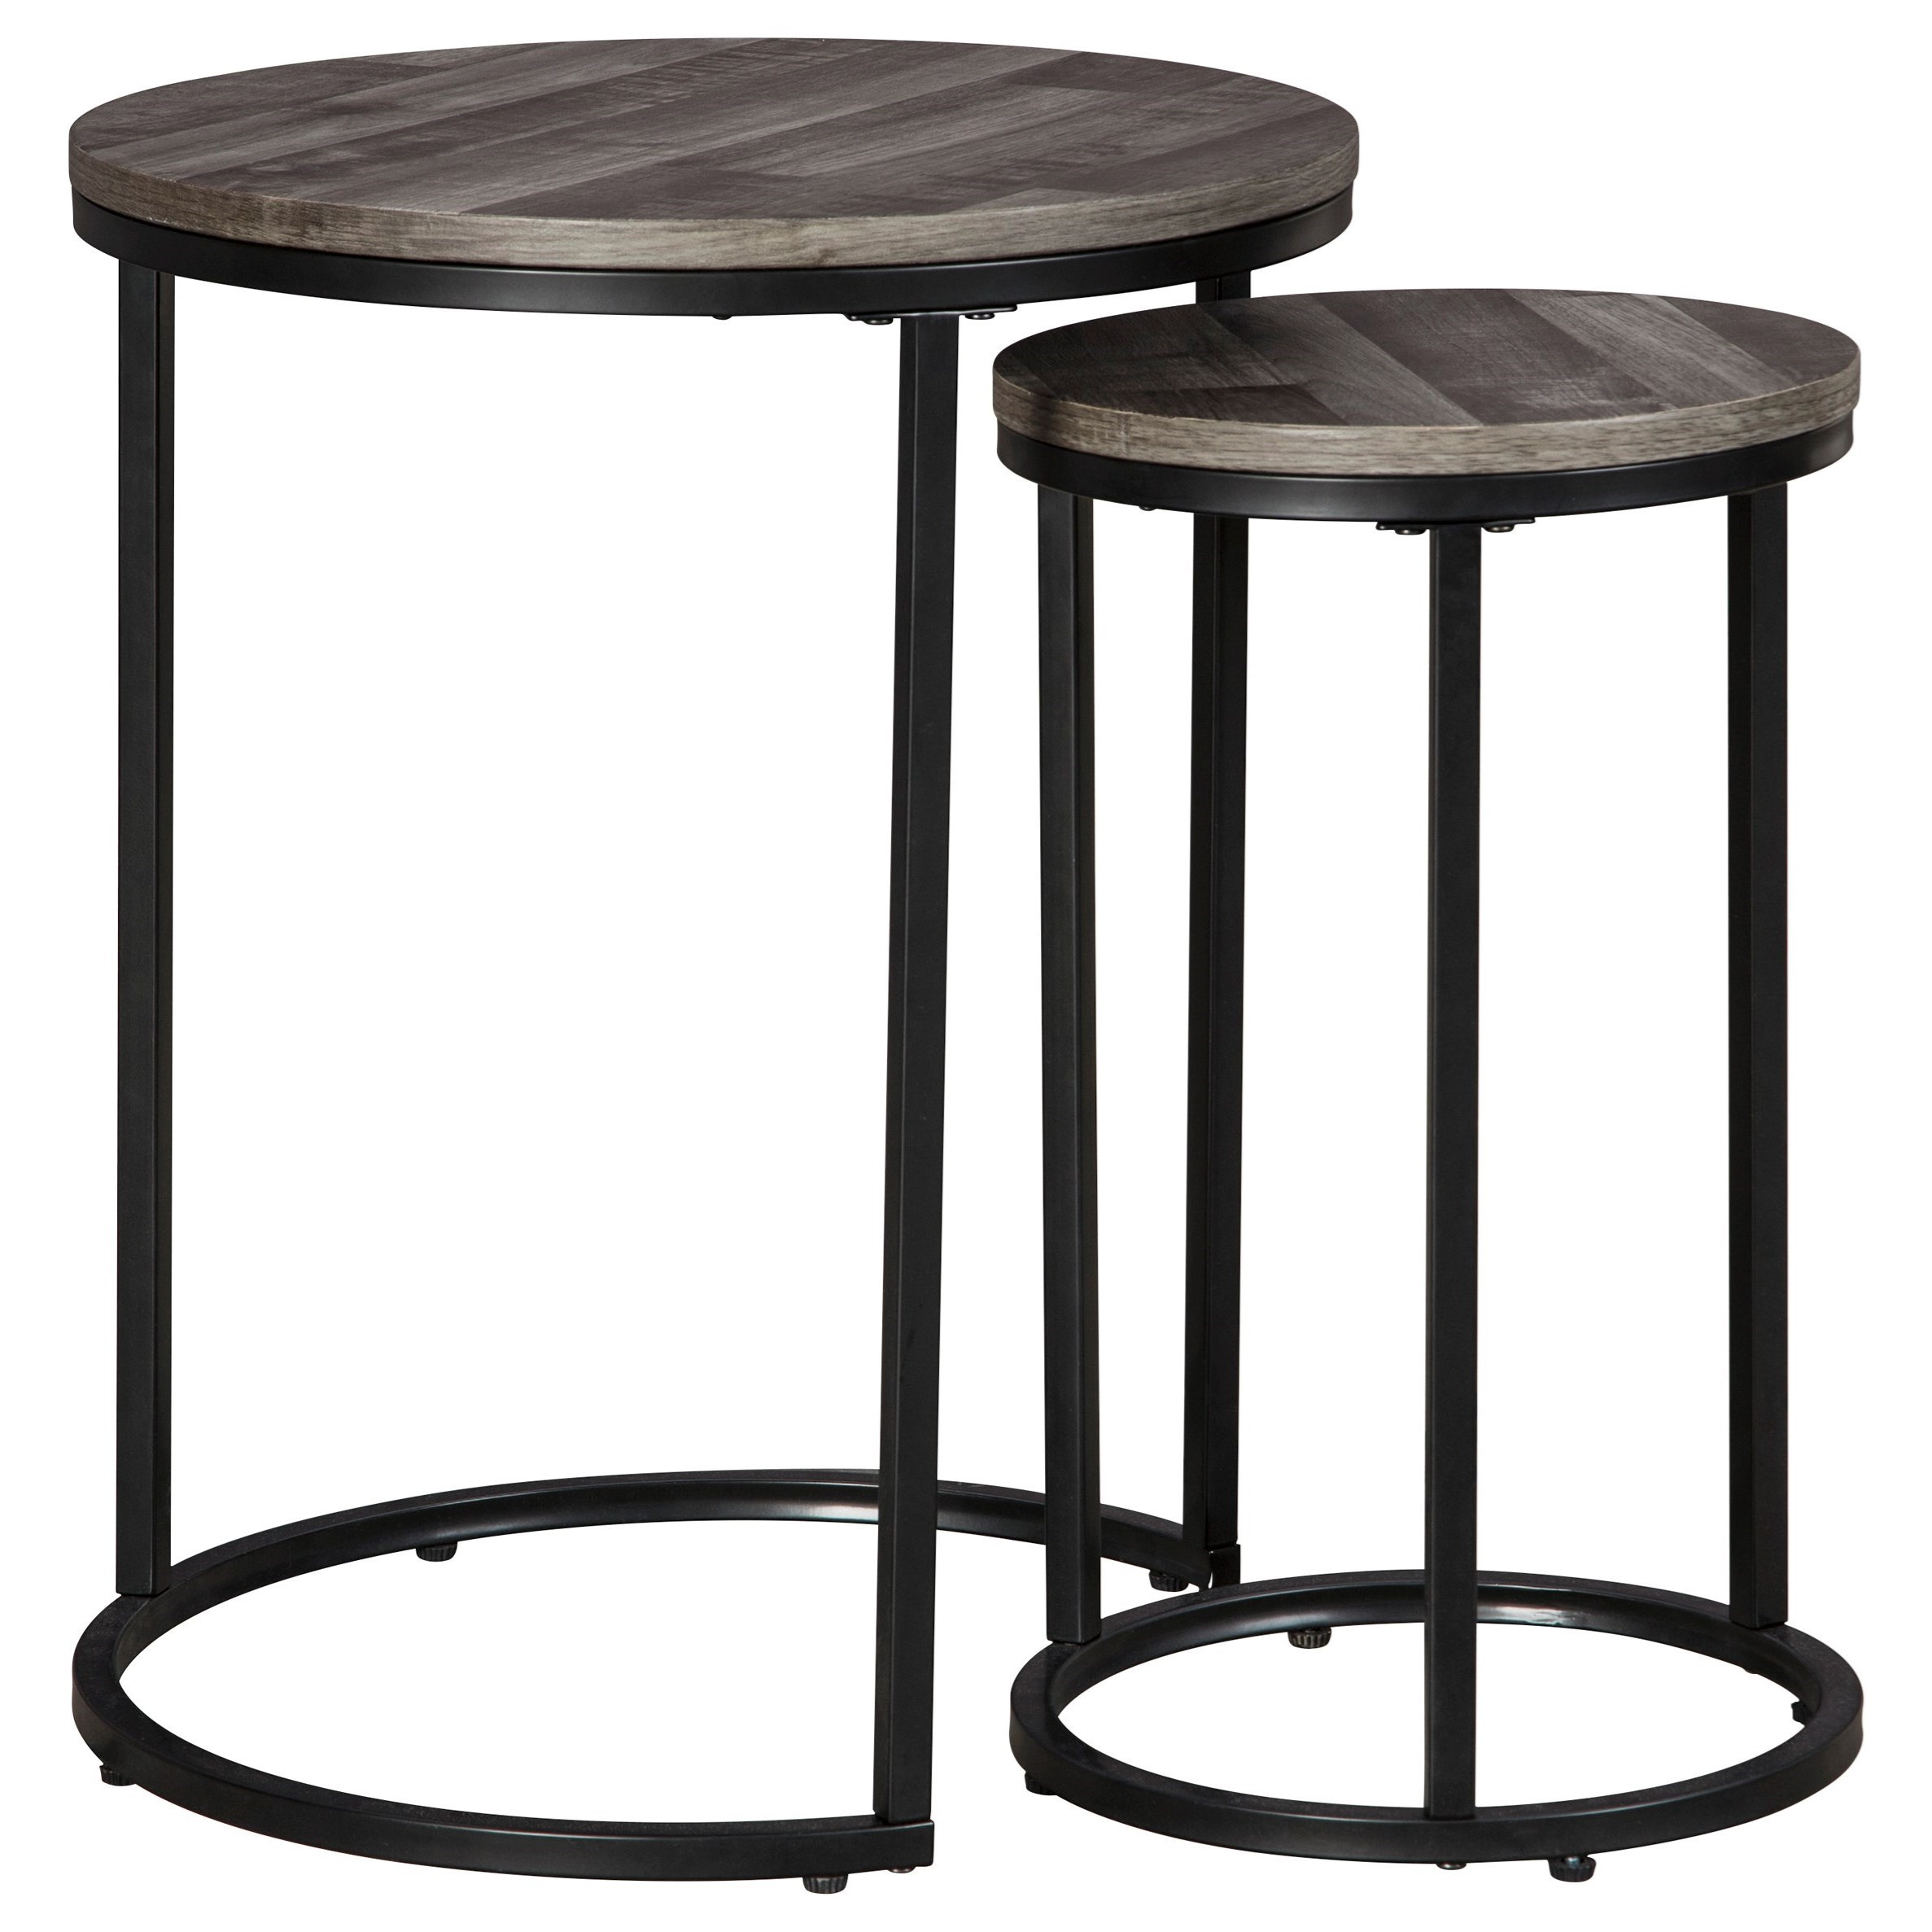 Briarsboro 2-Piece Accent Table Set by Signature Design by Ashley at Northeast Factory Direct